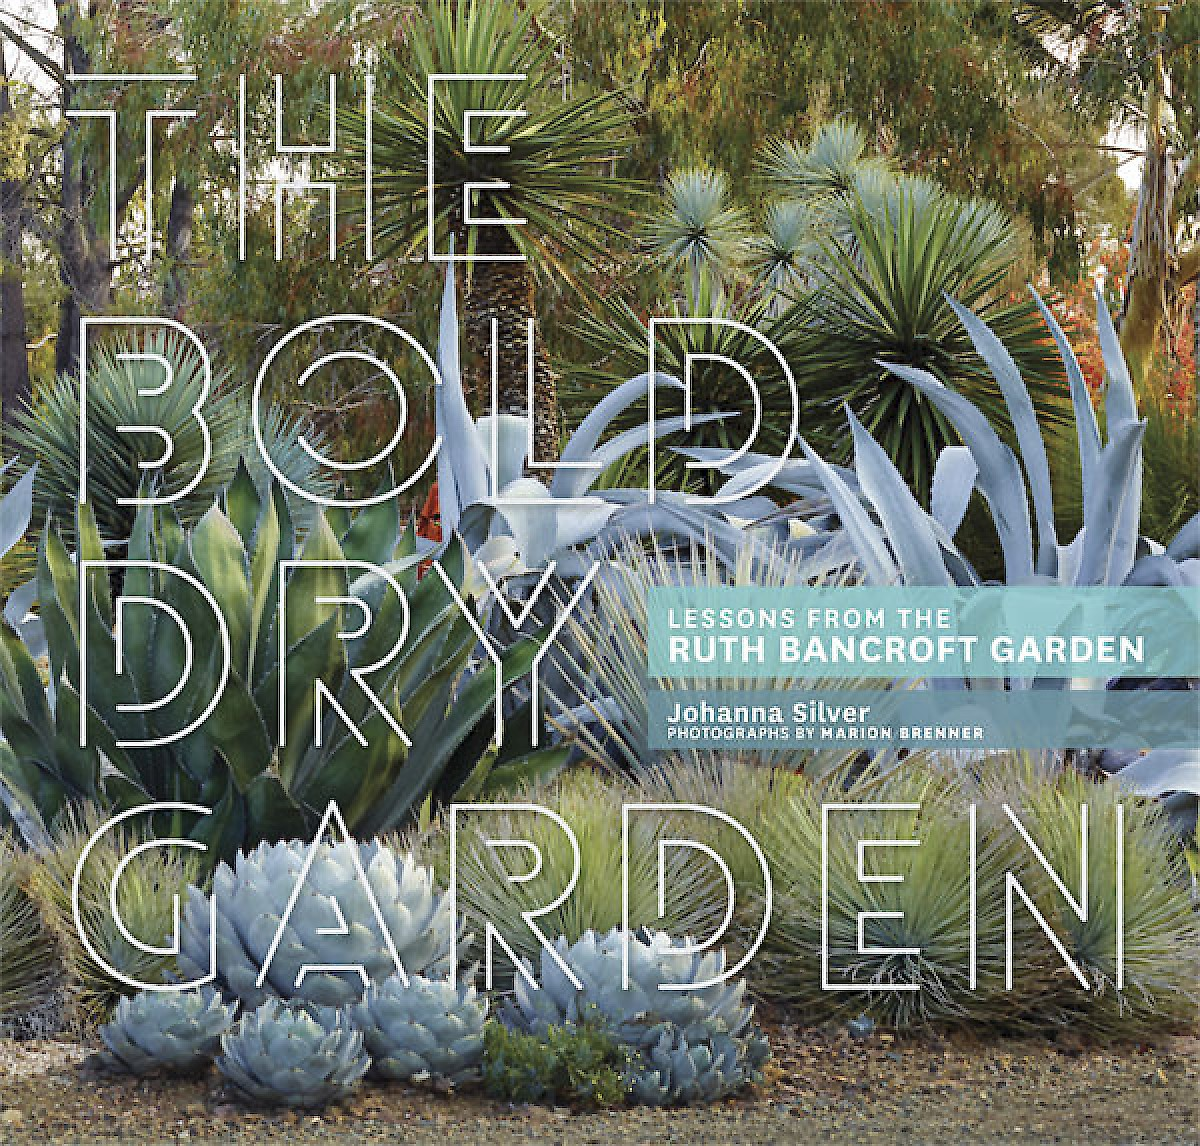 garden series lecture, the bold dry garden: lessons from the ruth